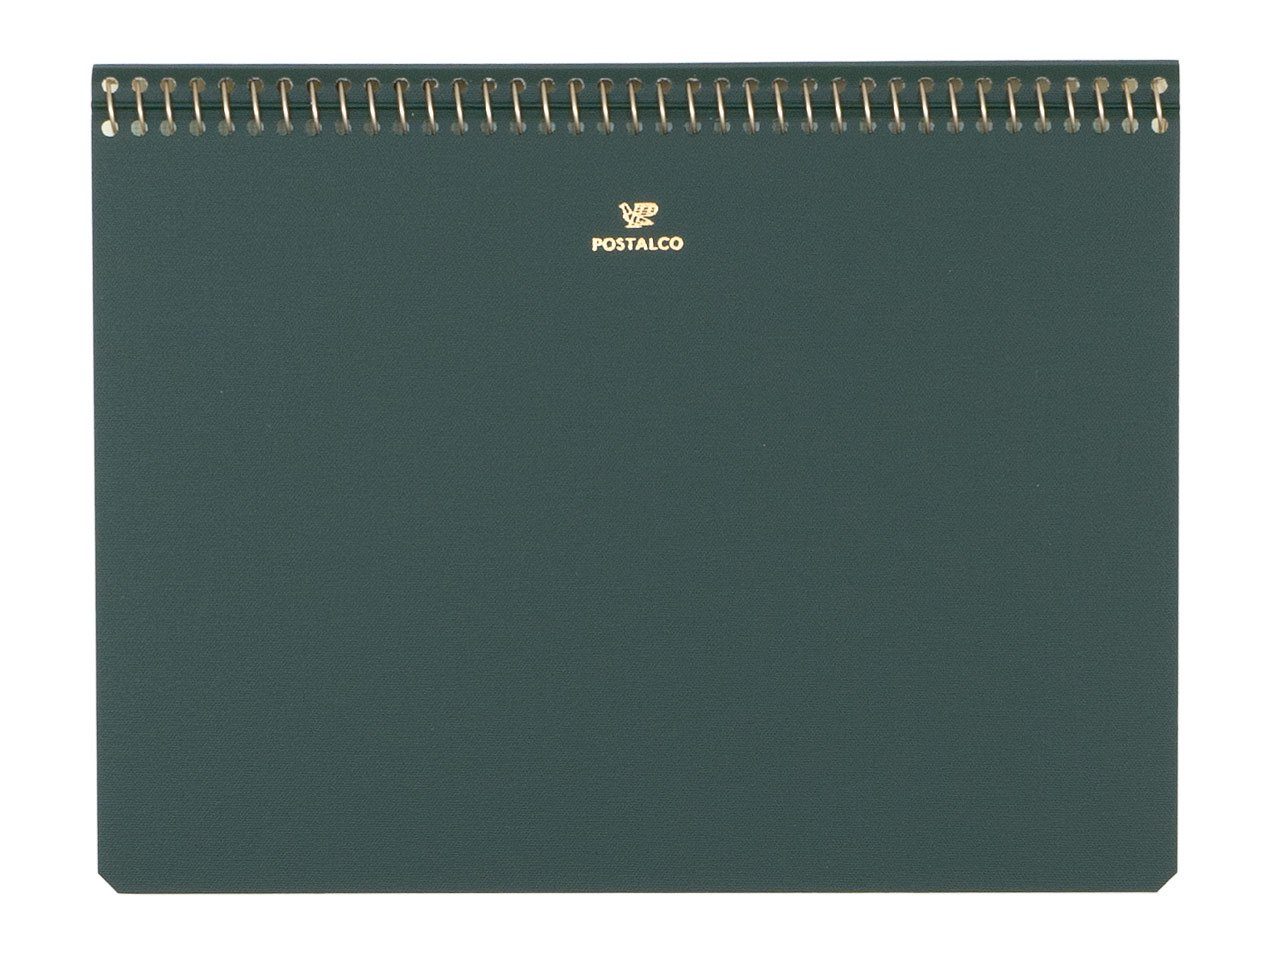 POSTALCO Notebook A5 Bank Green